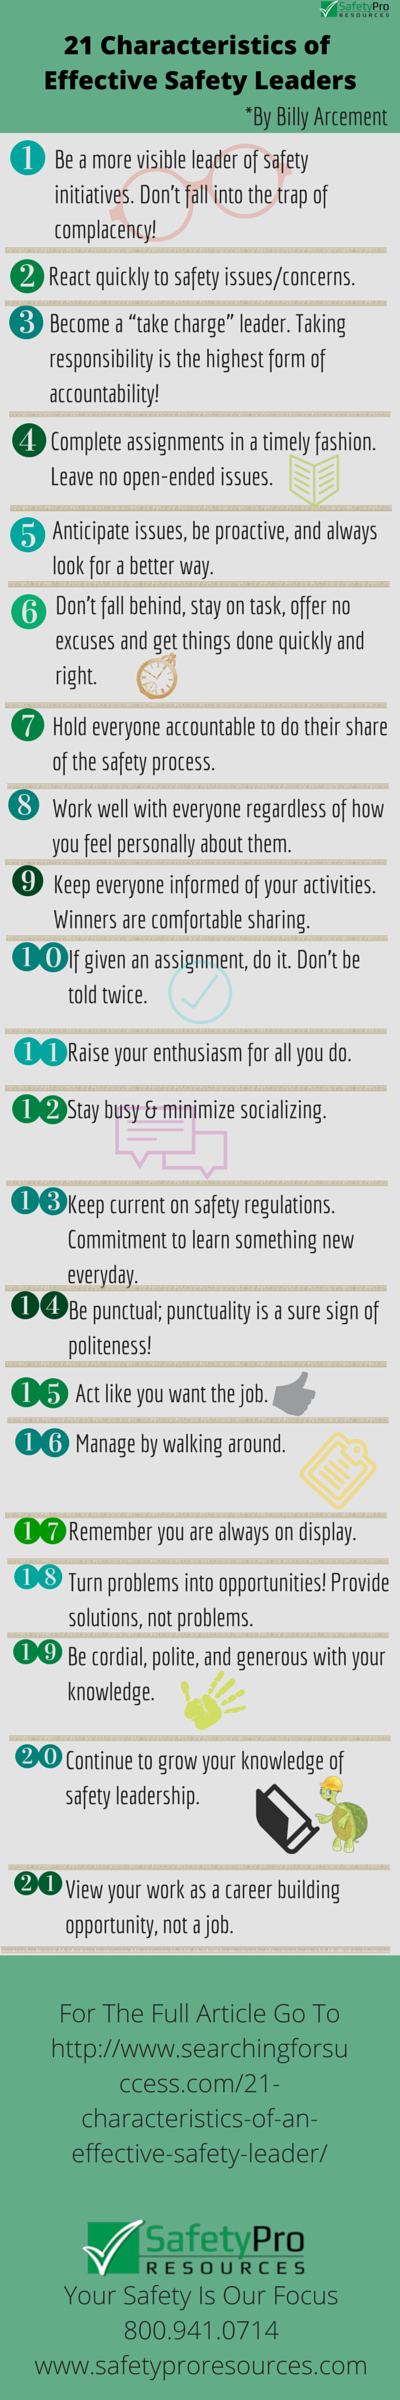 21 Characteristics of effective safety leaders